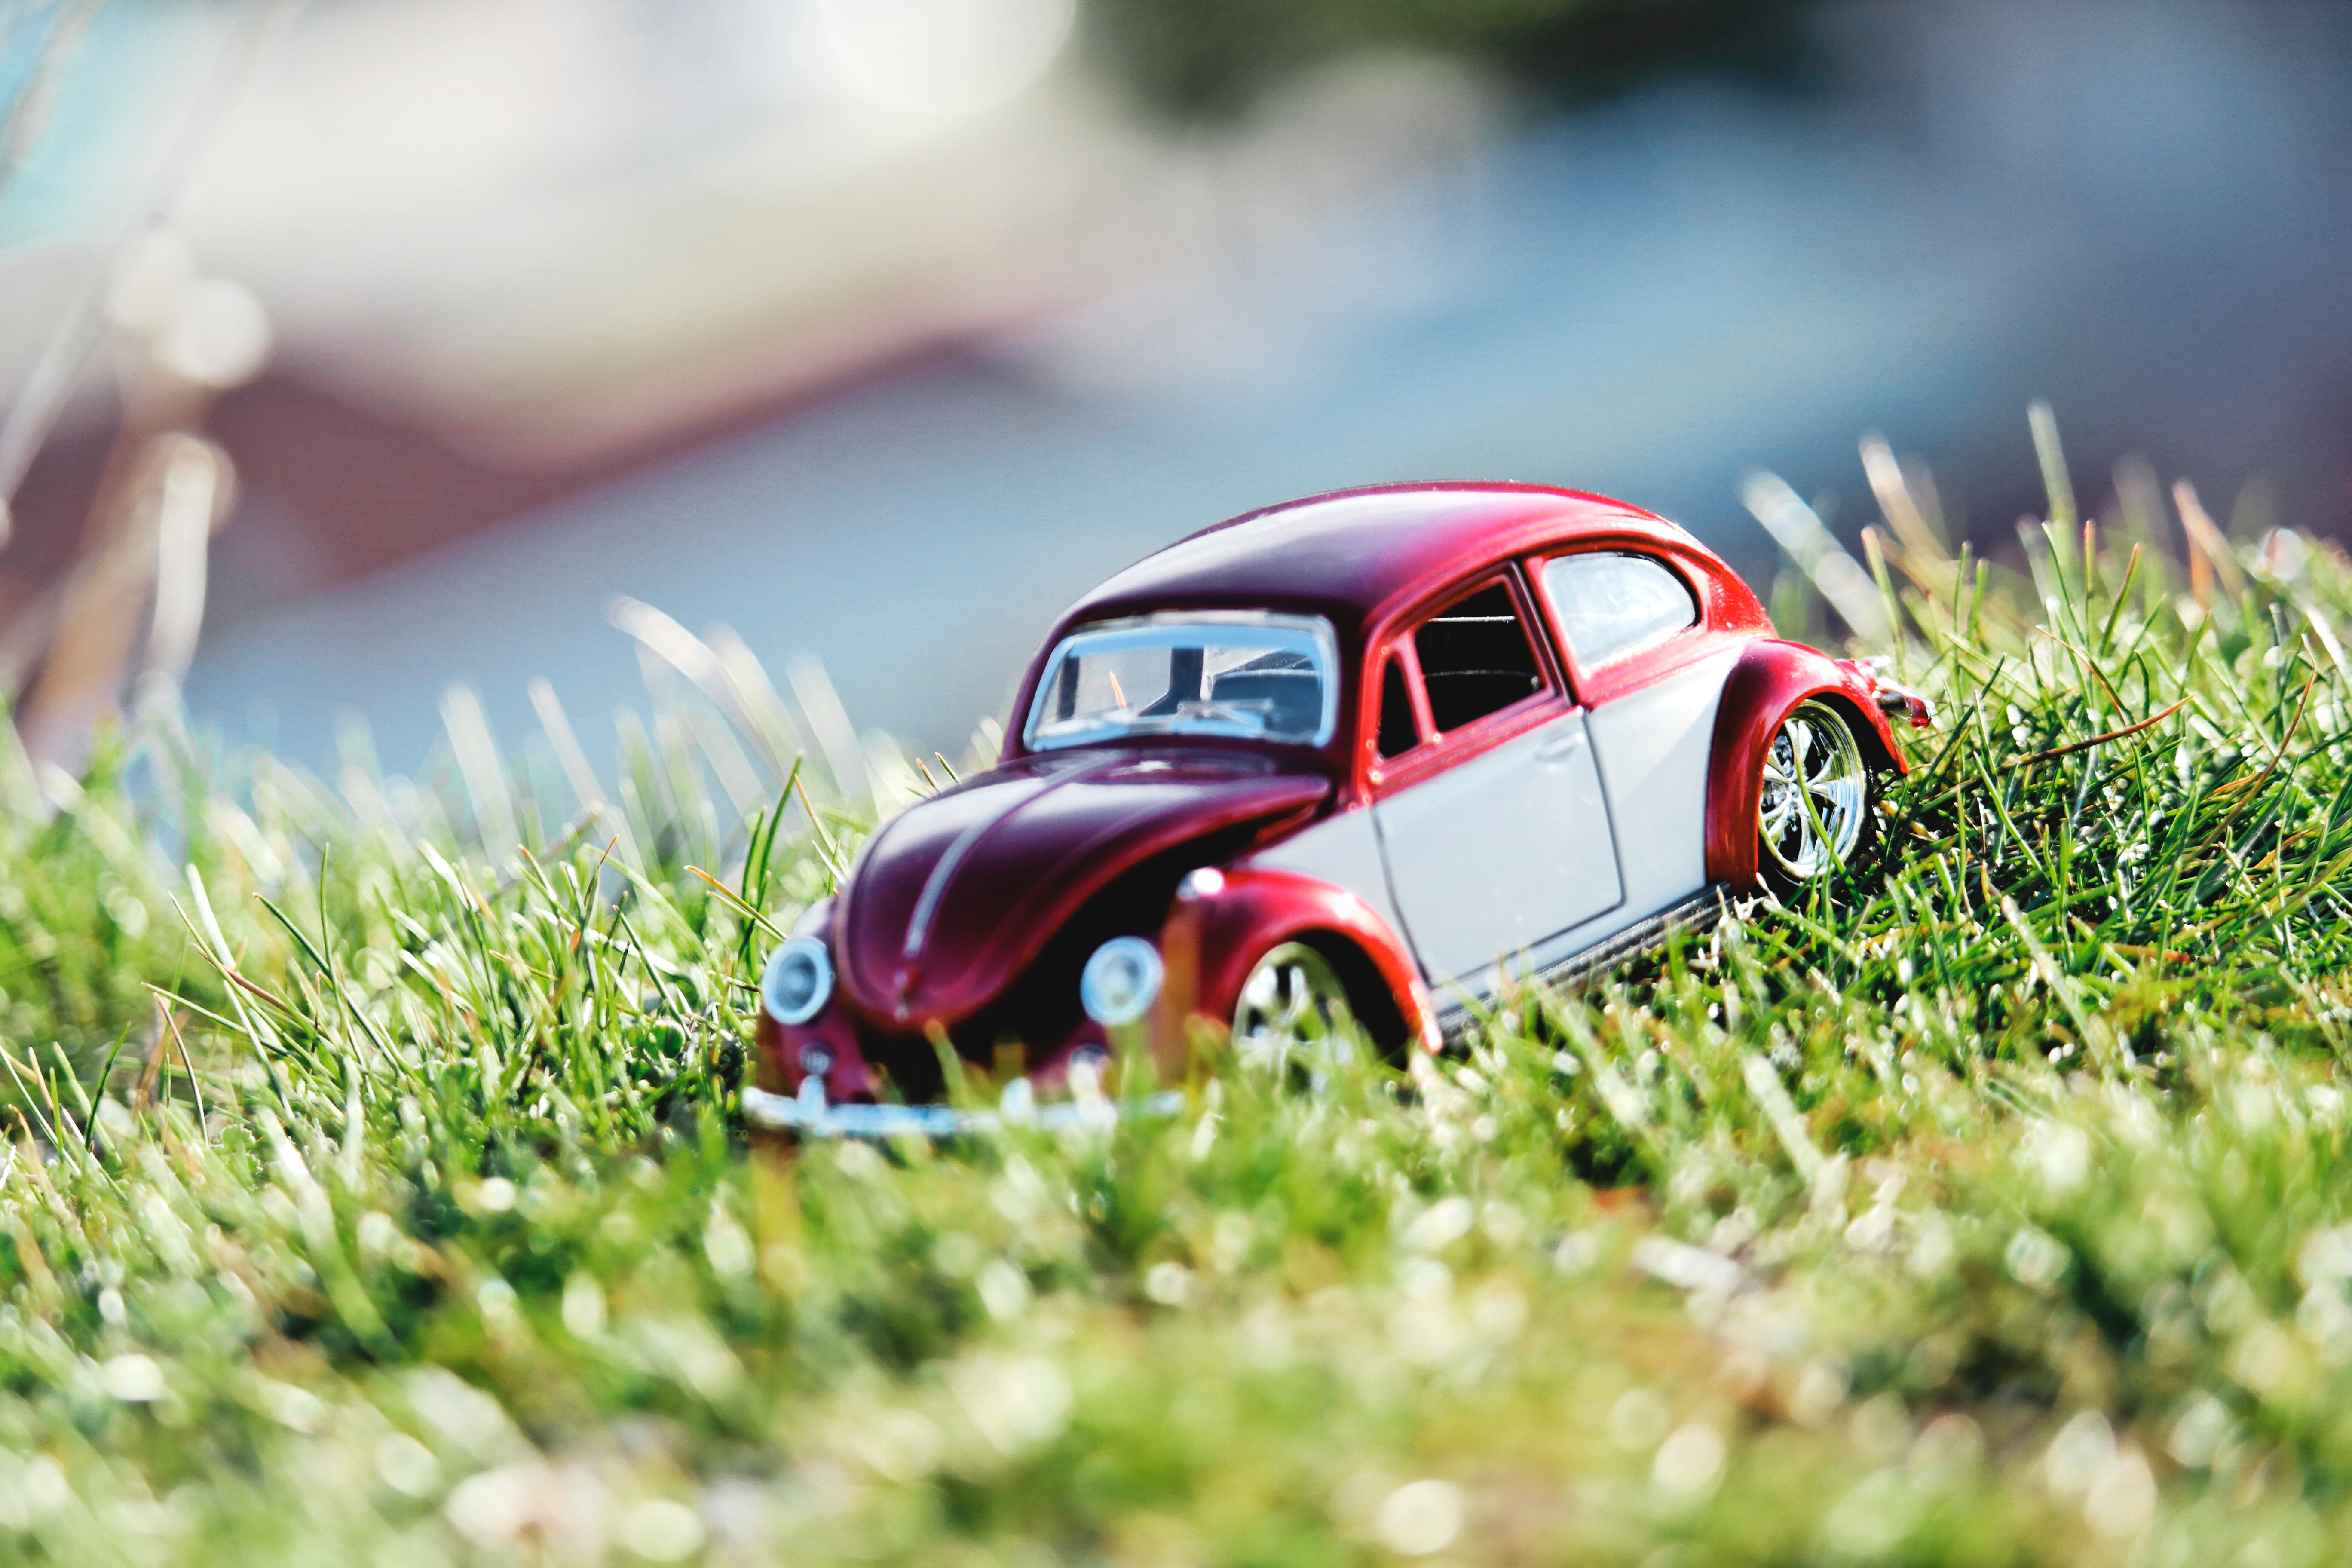 Red And White Beetle Car Toy On Grass Field In Bokeh